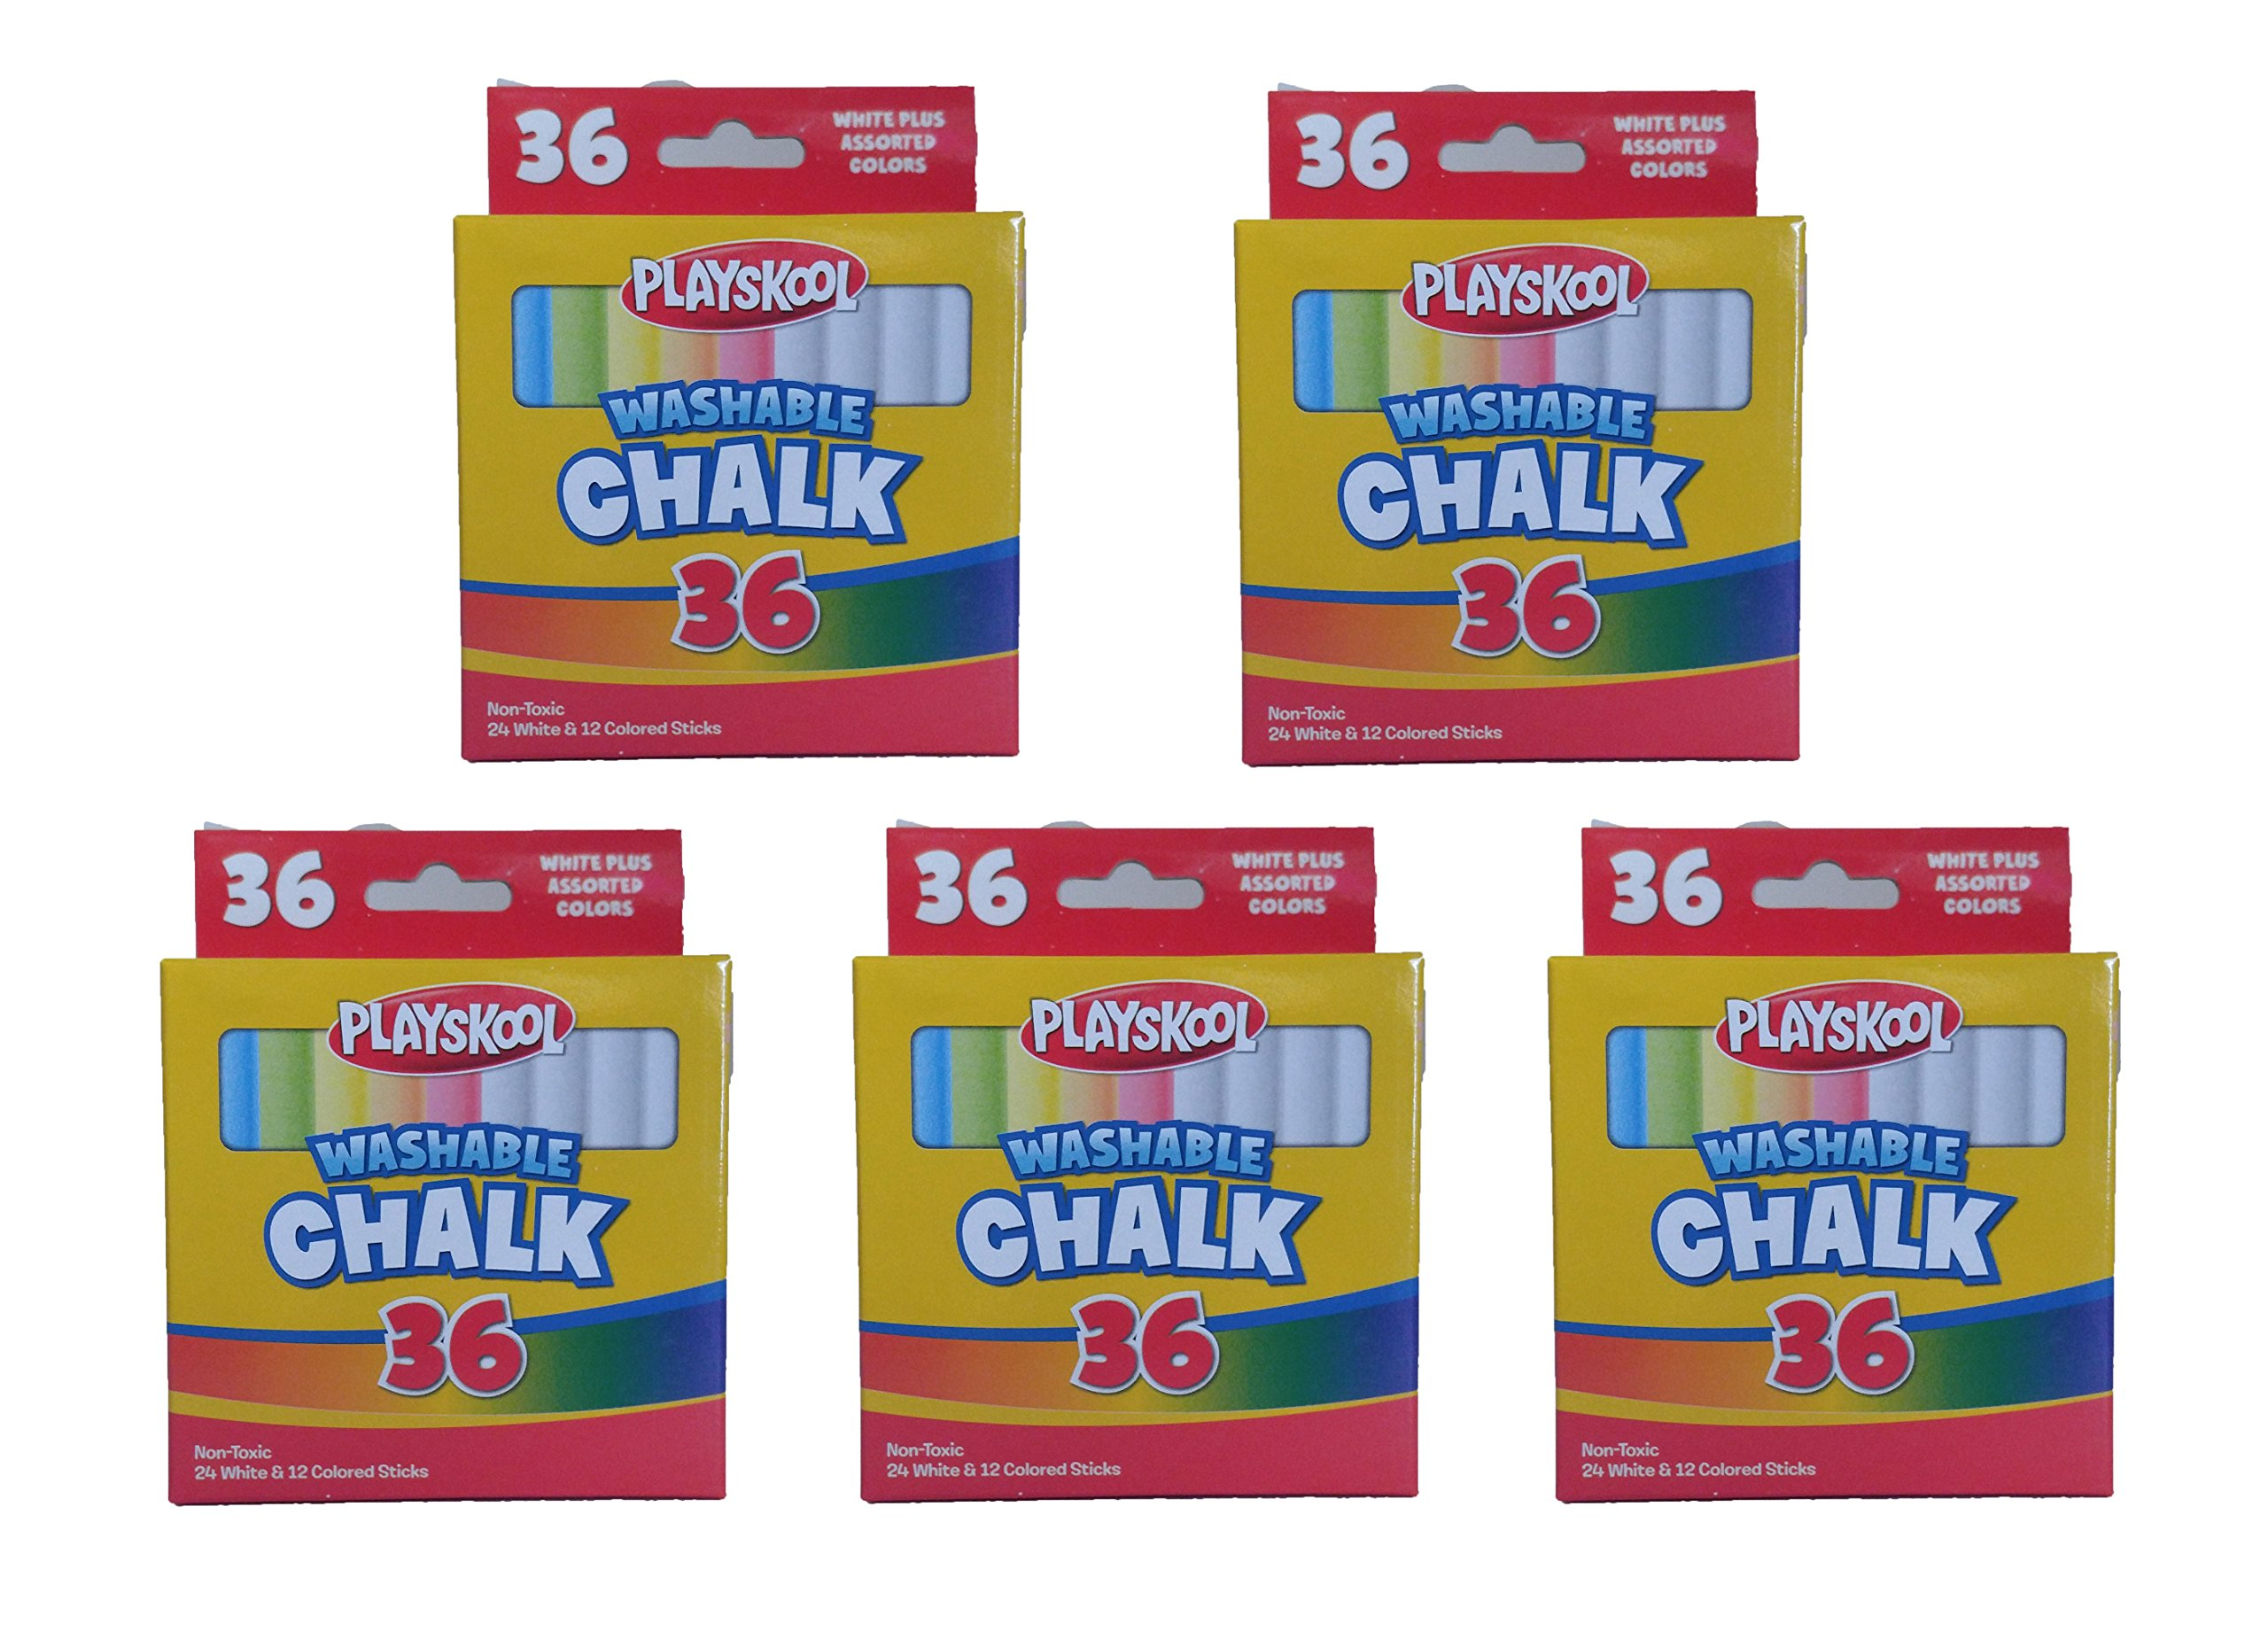 Set of 5 Playskool Brand Washable 36 Piece White and Assorted Colored Chalk by Playskool